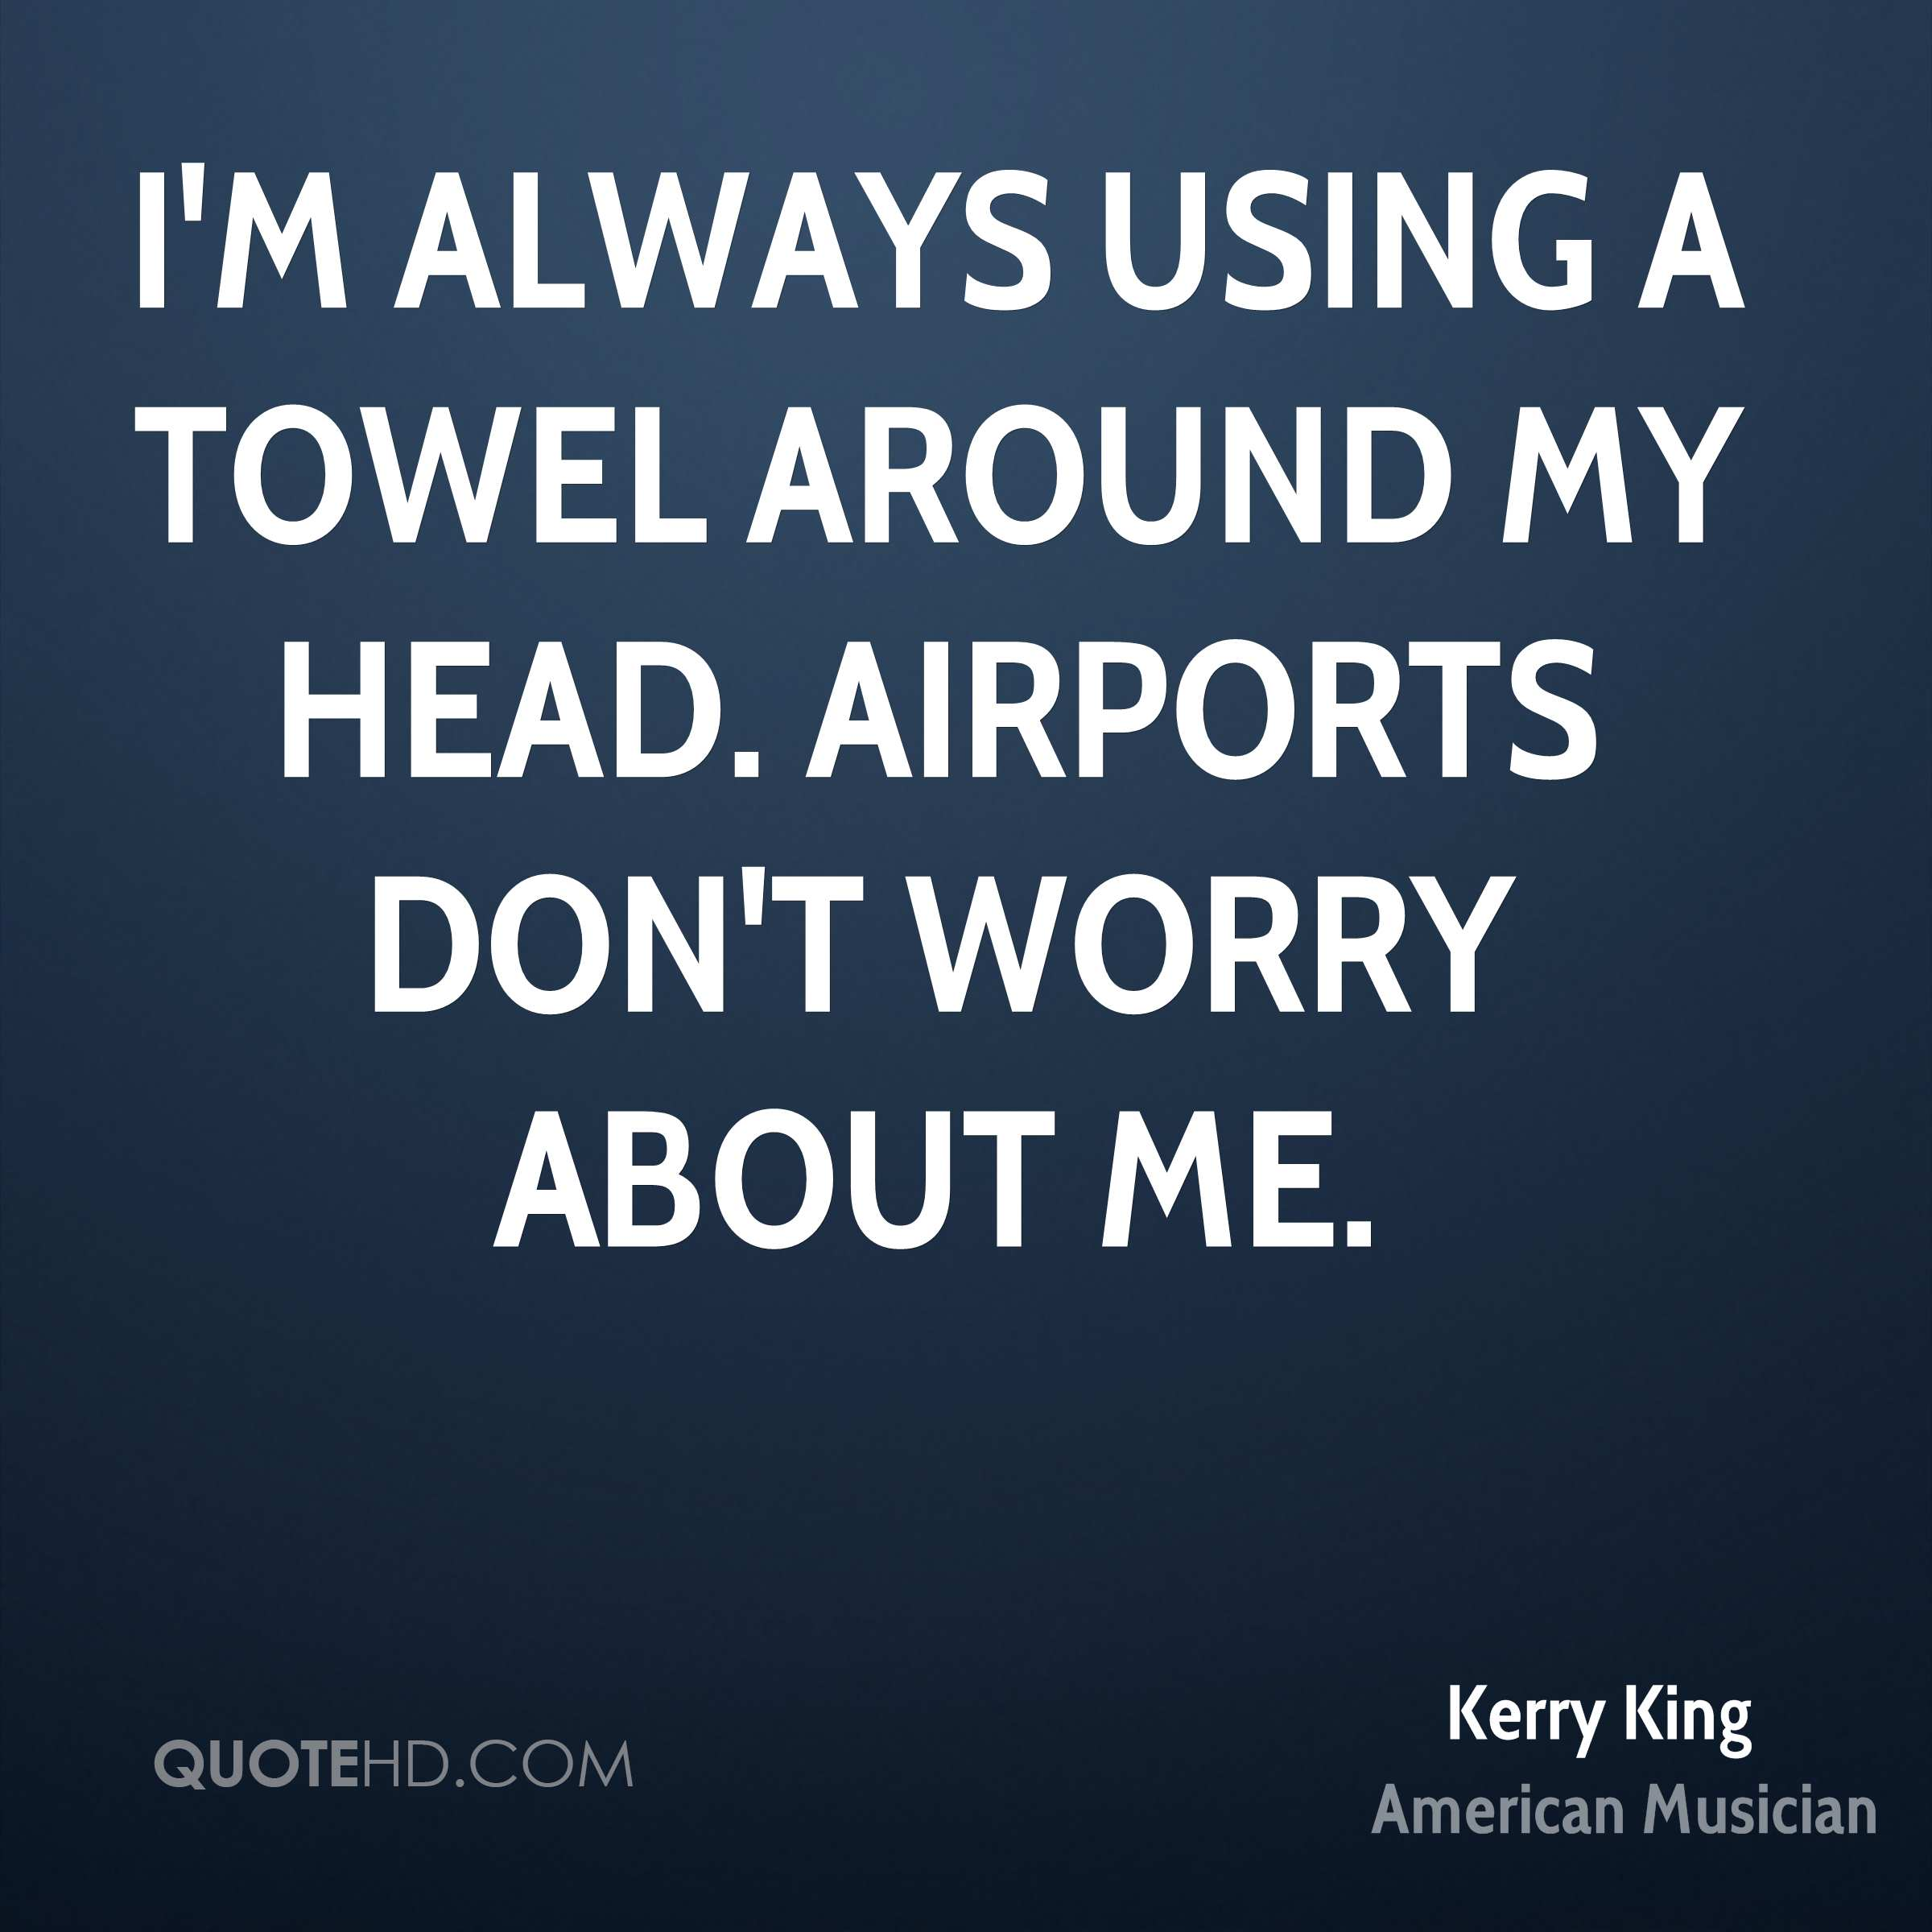 I'm always using a towel around my head. Airports don't worry about me.